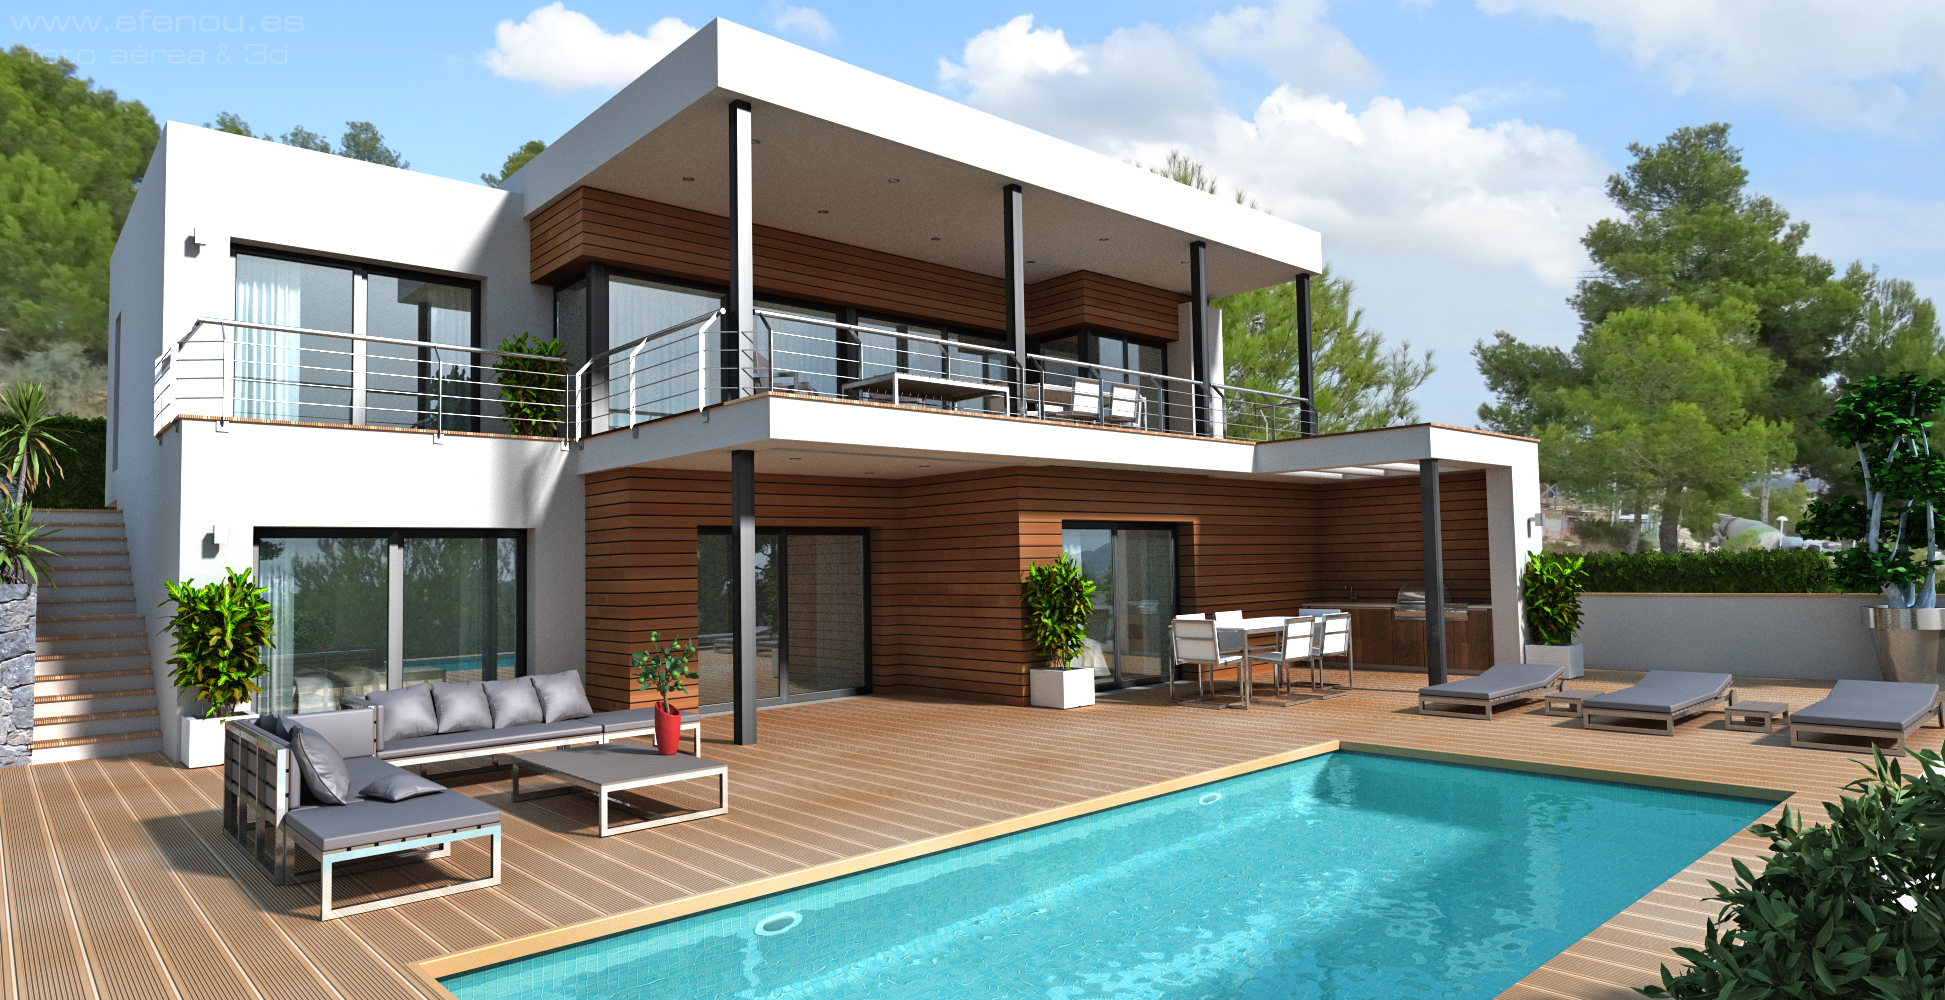 New Build Project Villa well located in Moraira, Camarrocha at just 2.5 km from the nearest beach,,Spain